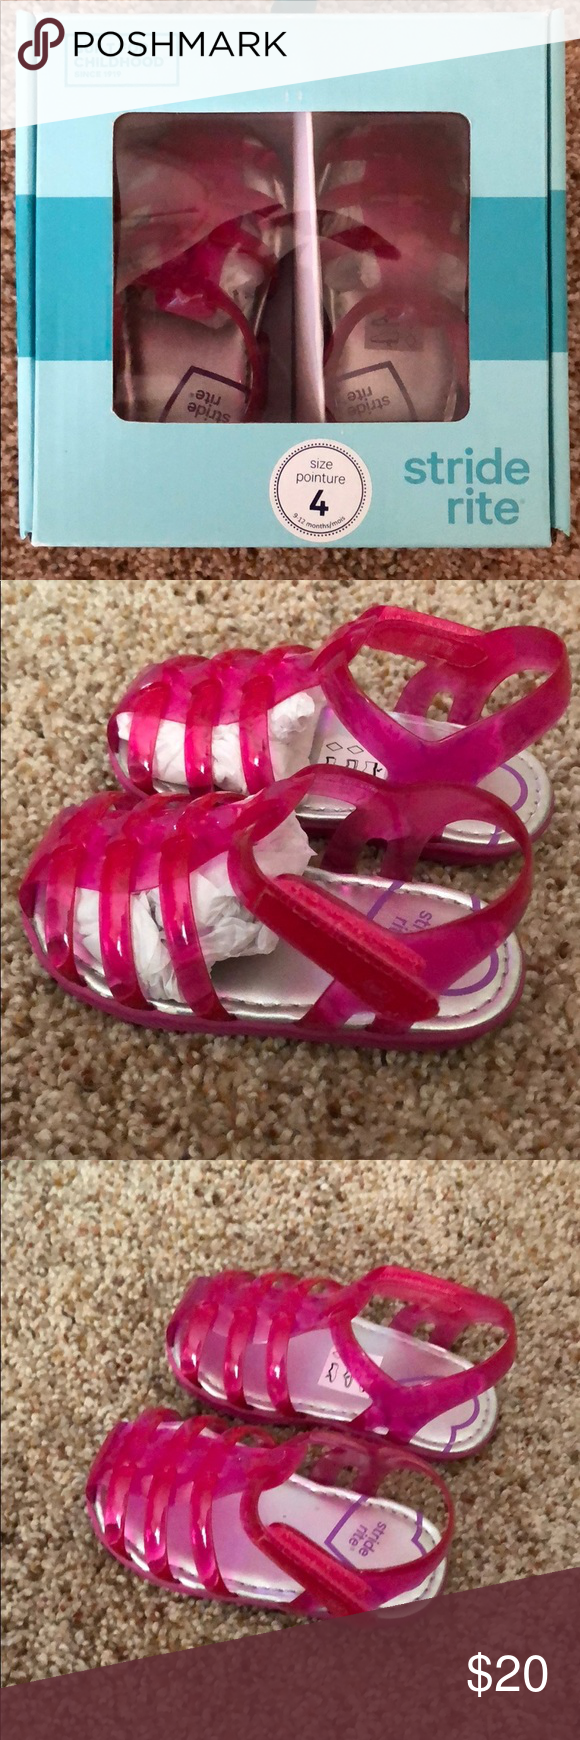 9496a2c6dba9 Baby Stride Rite Pink Jelly Sandals Size 4 NIB Baby Stride Rite Pink Jelly  Sandals Size